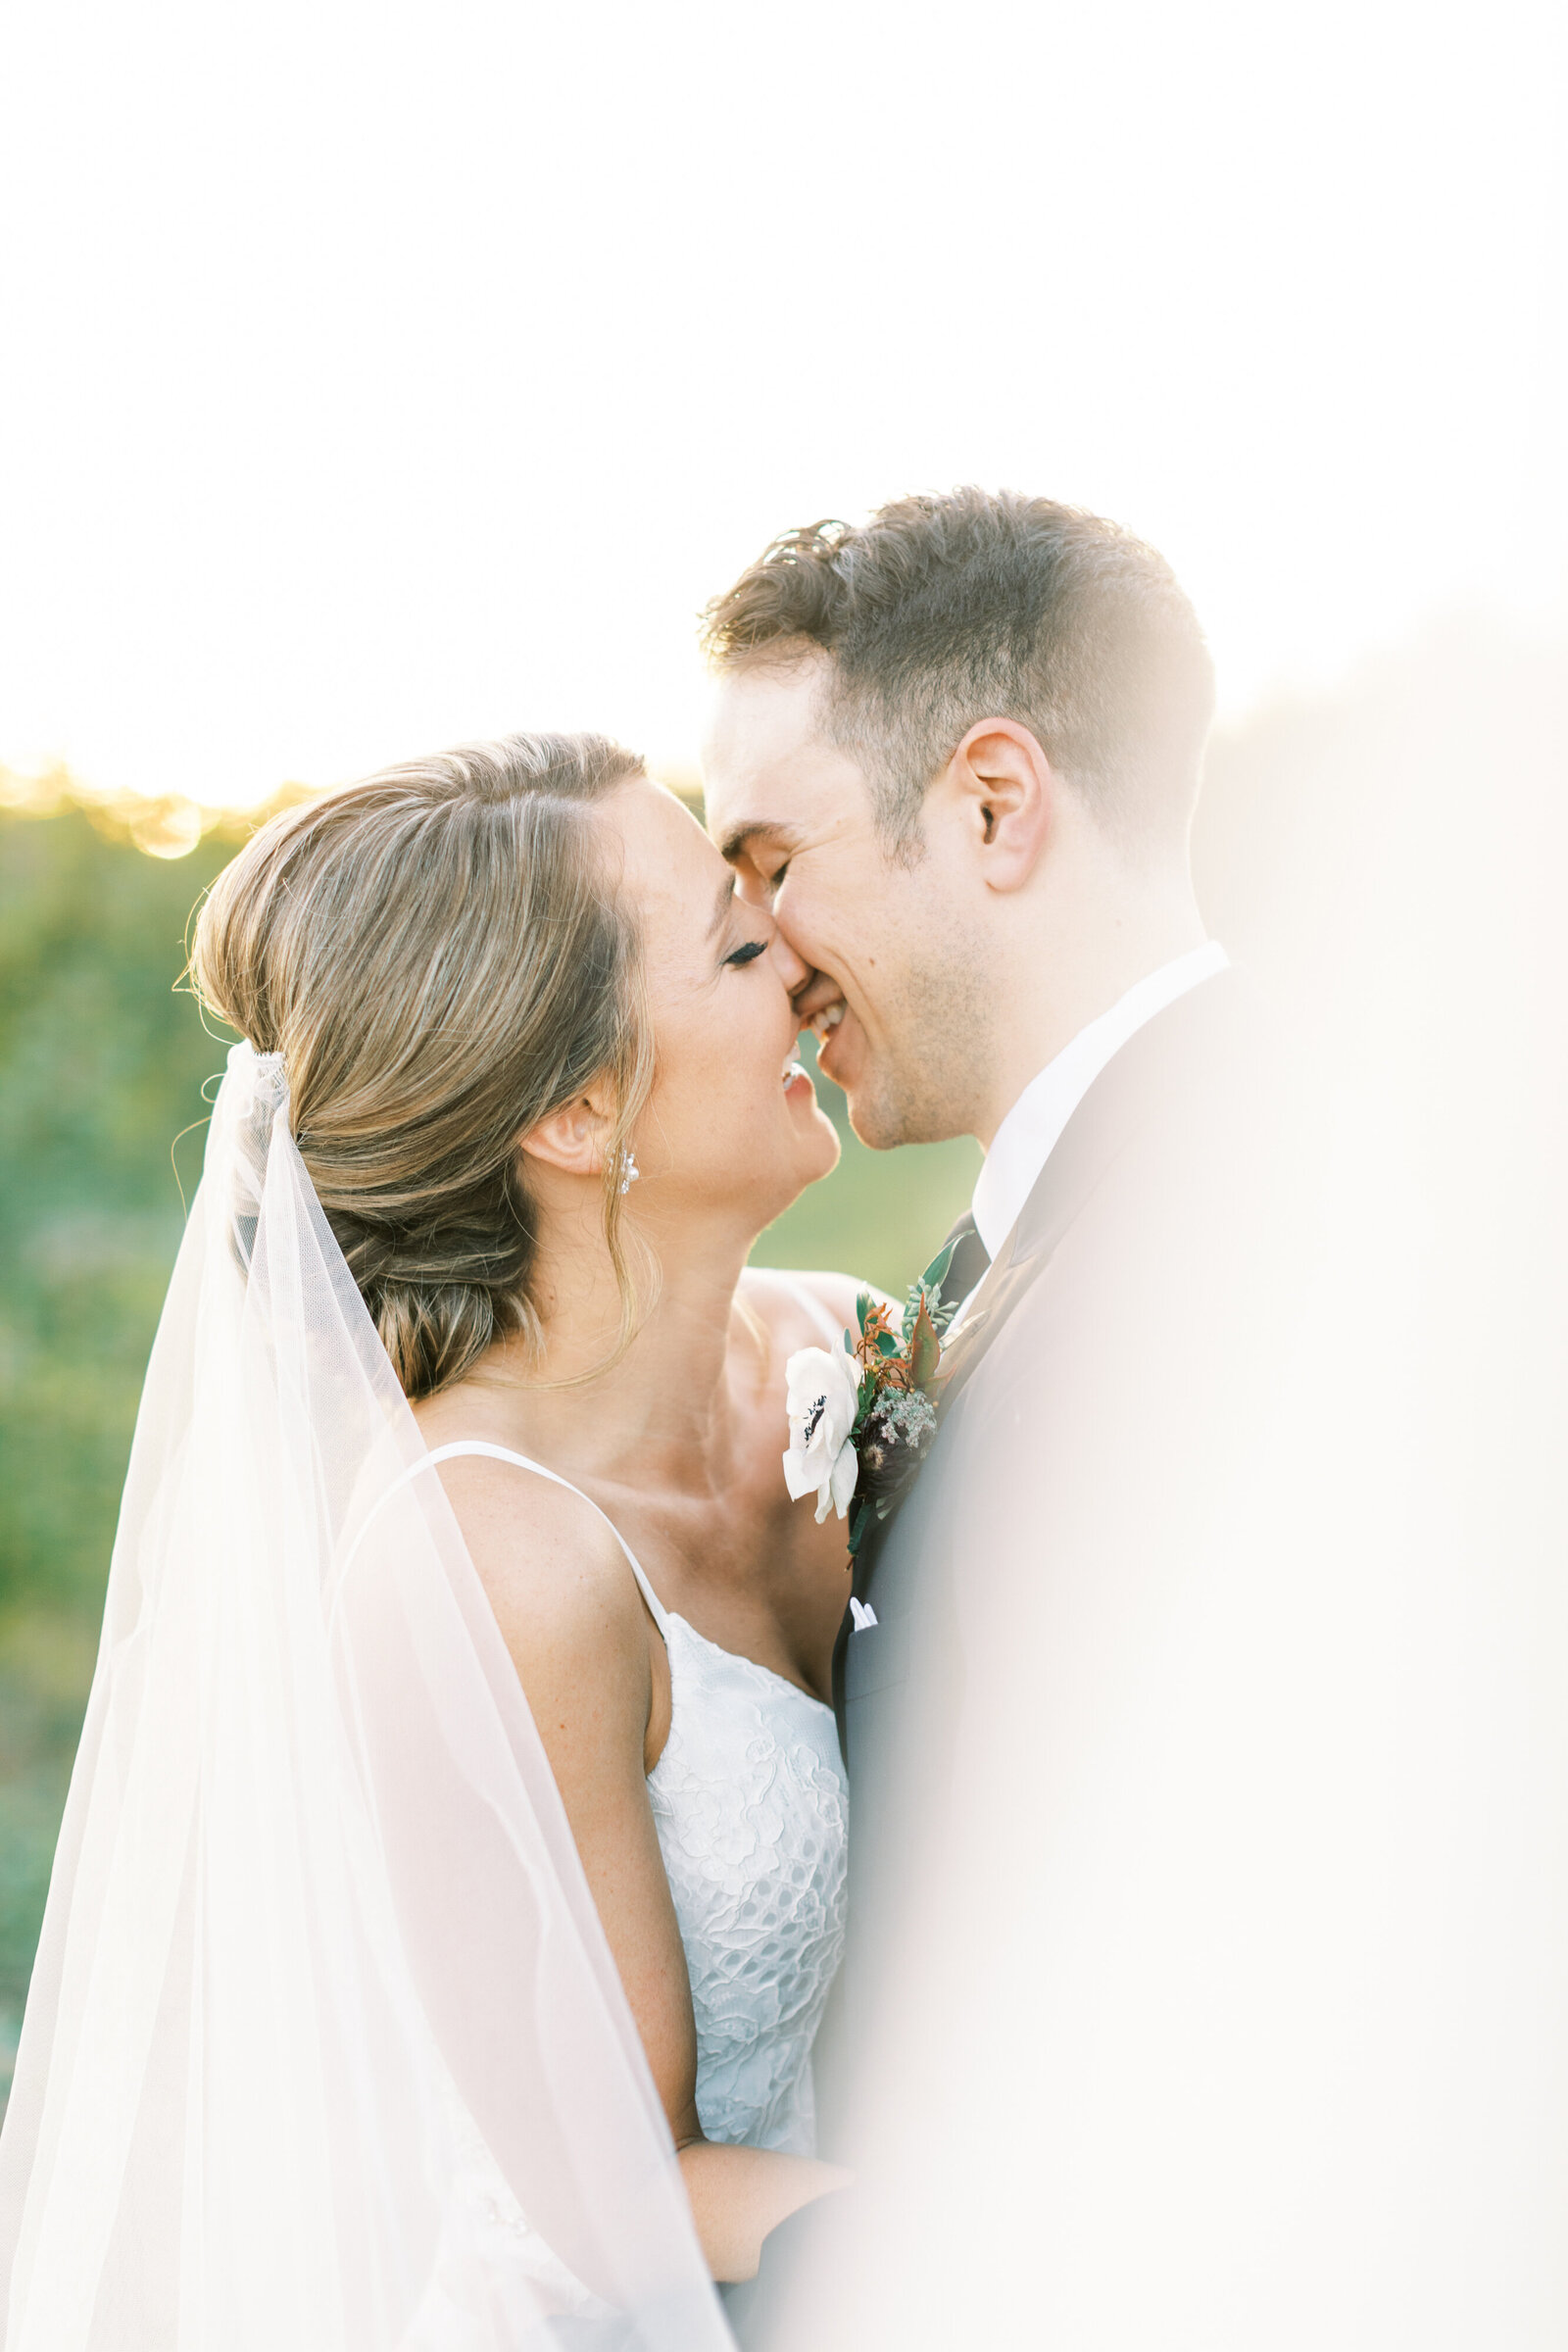 Dallas Wedding Photographer - Alison Heffington1